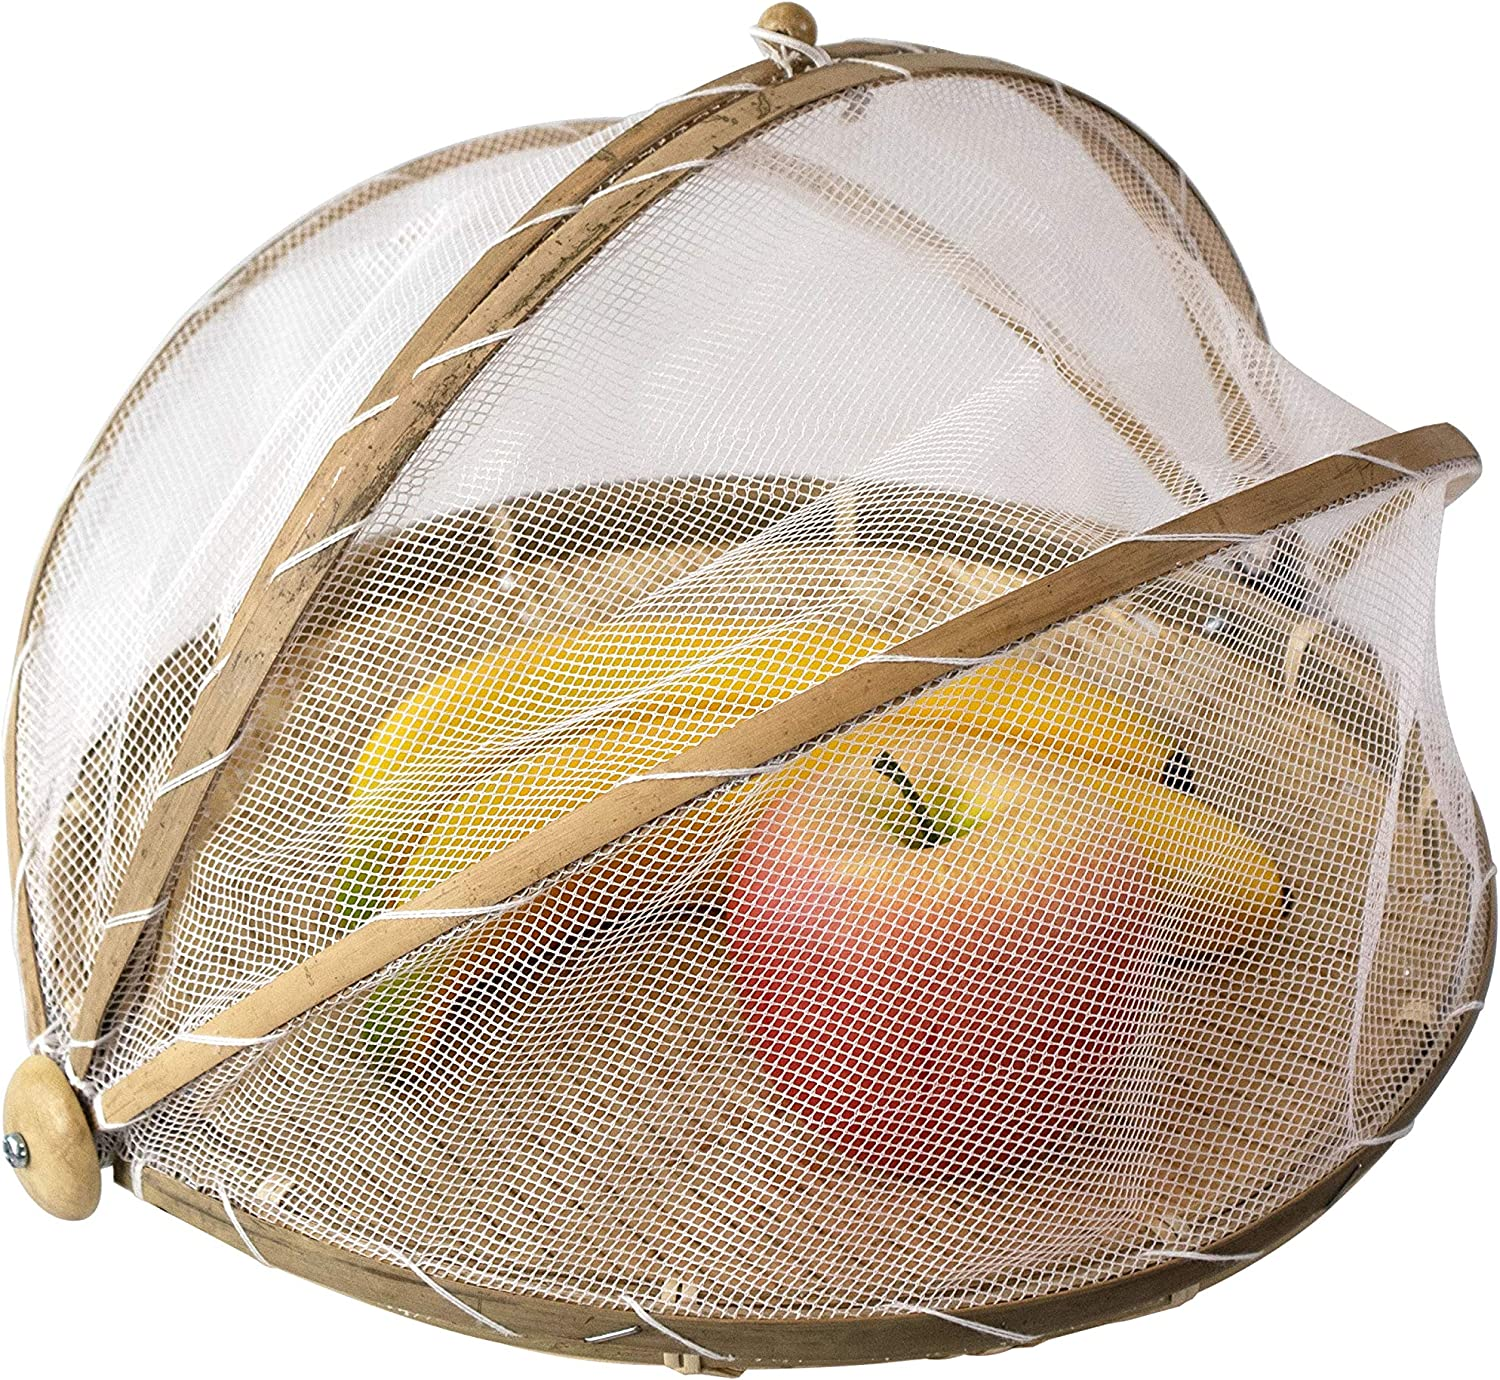 Bamboo Woven Round Food Tent and Plate Serving Cover | Wicker Fruit Vegetable Bread Mesh Cover Storage Container for Dining Outdoor Picnic to Keep Out Flies, Bugs, Mosquitoes